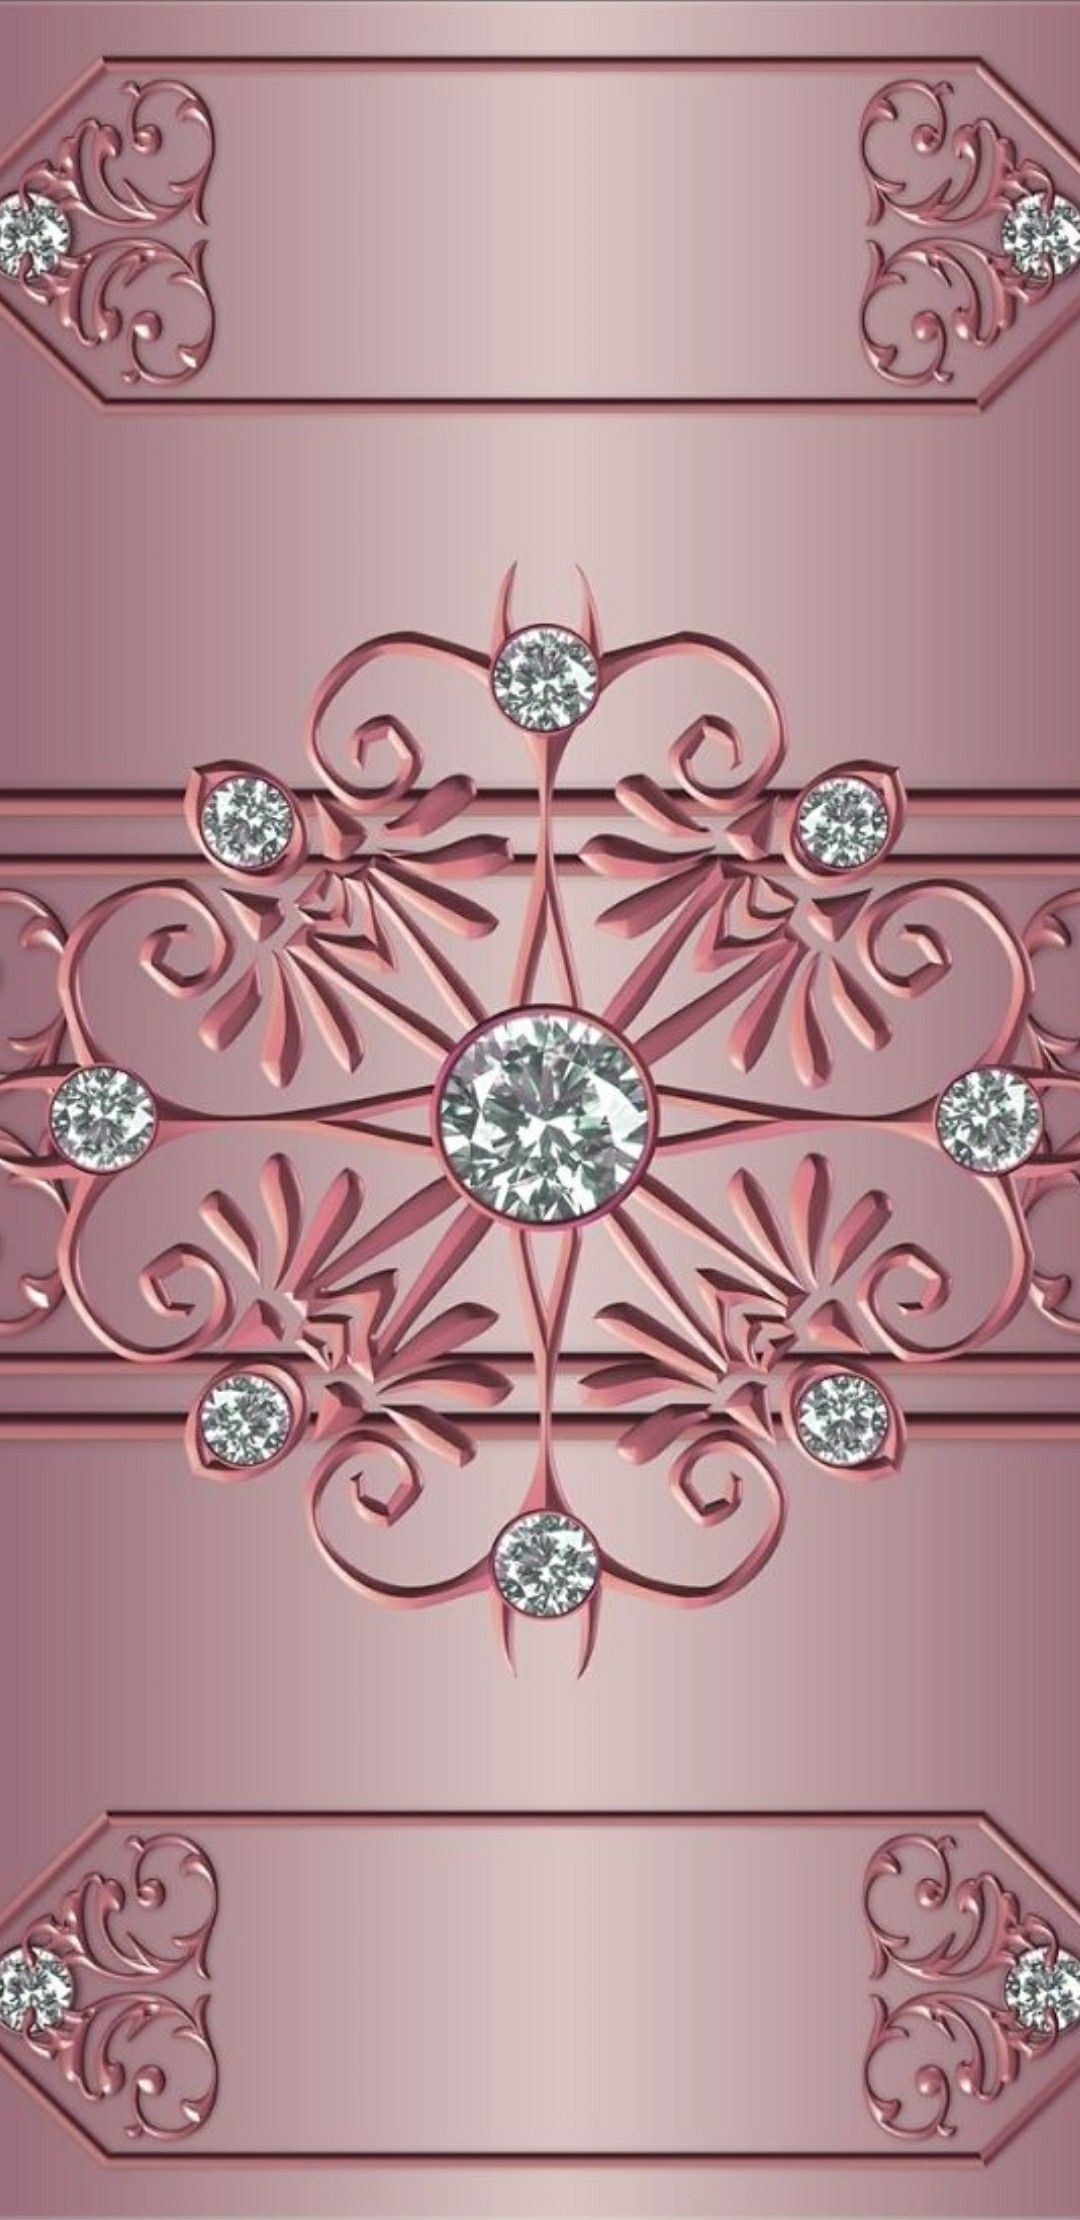 Res: 1080x2220, Pink and silver sparkly diamond's